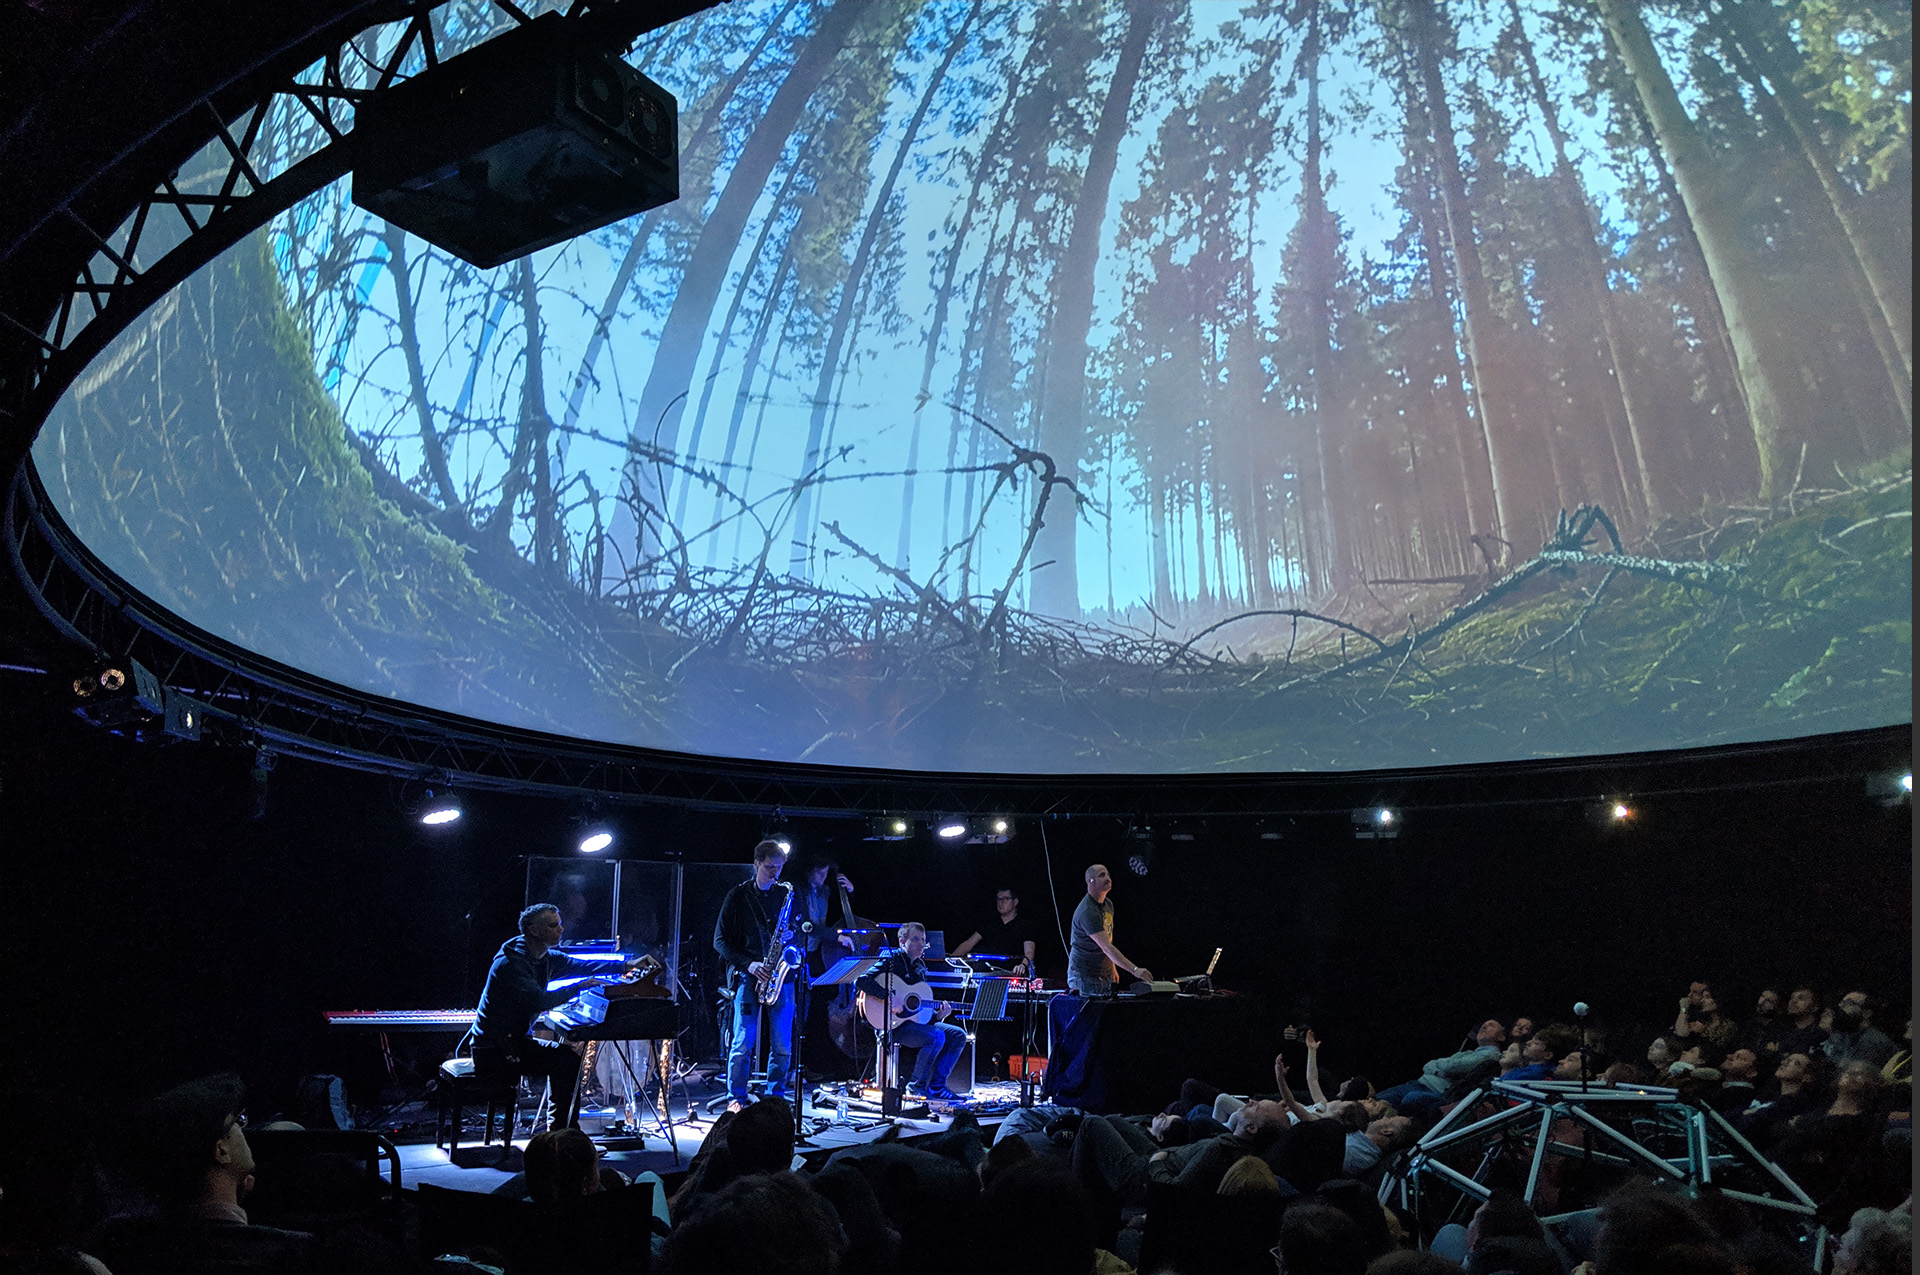 Juniper immersive performance in a 12m dome powered by Screenberry media server